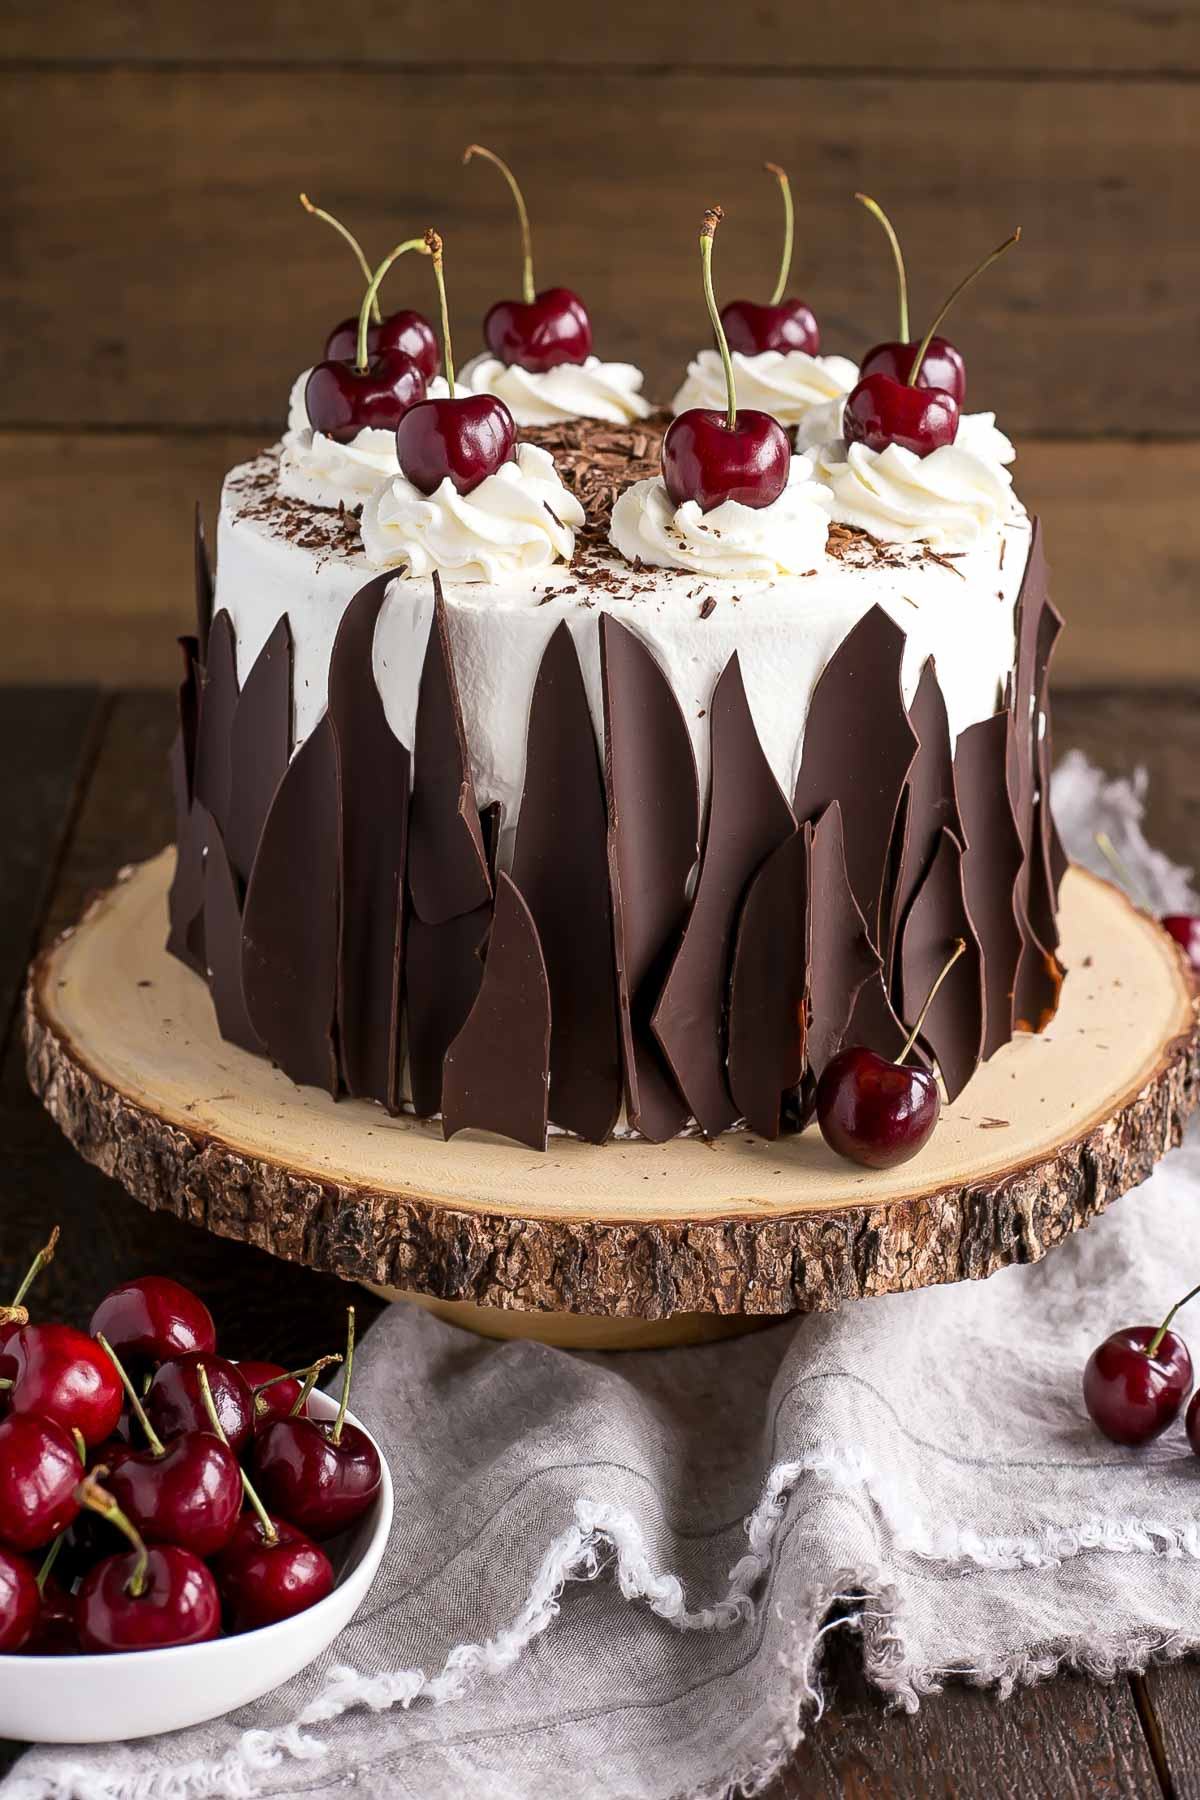 Black Forest Cake Recipe Using Cake Mix